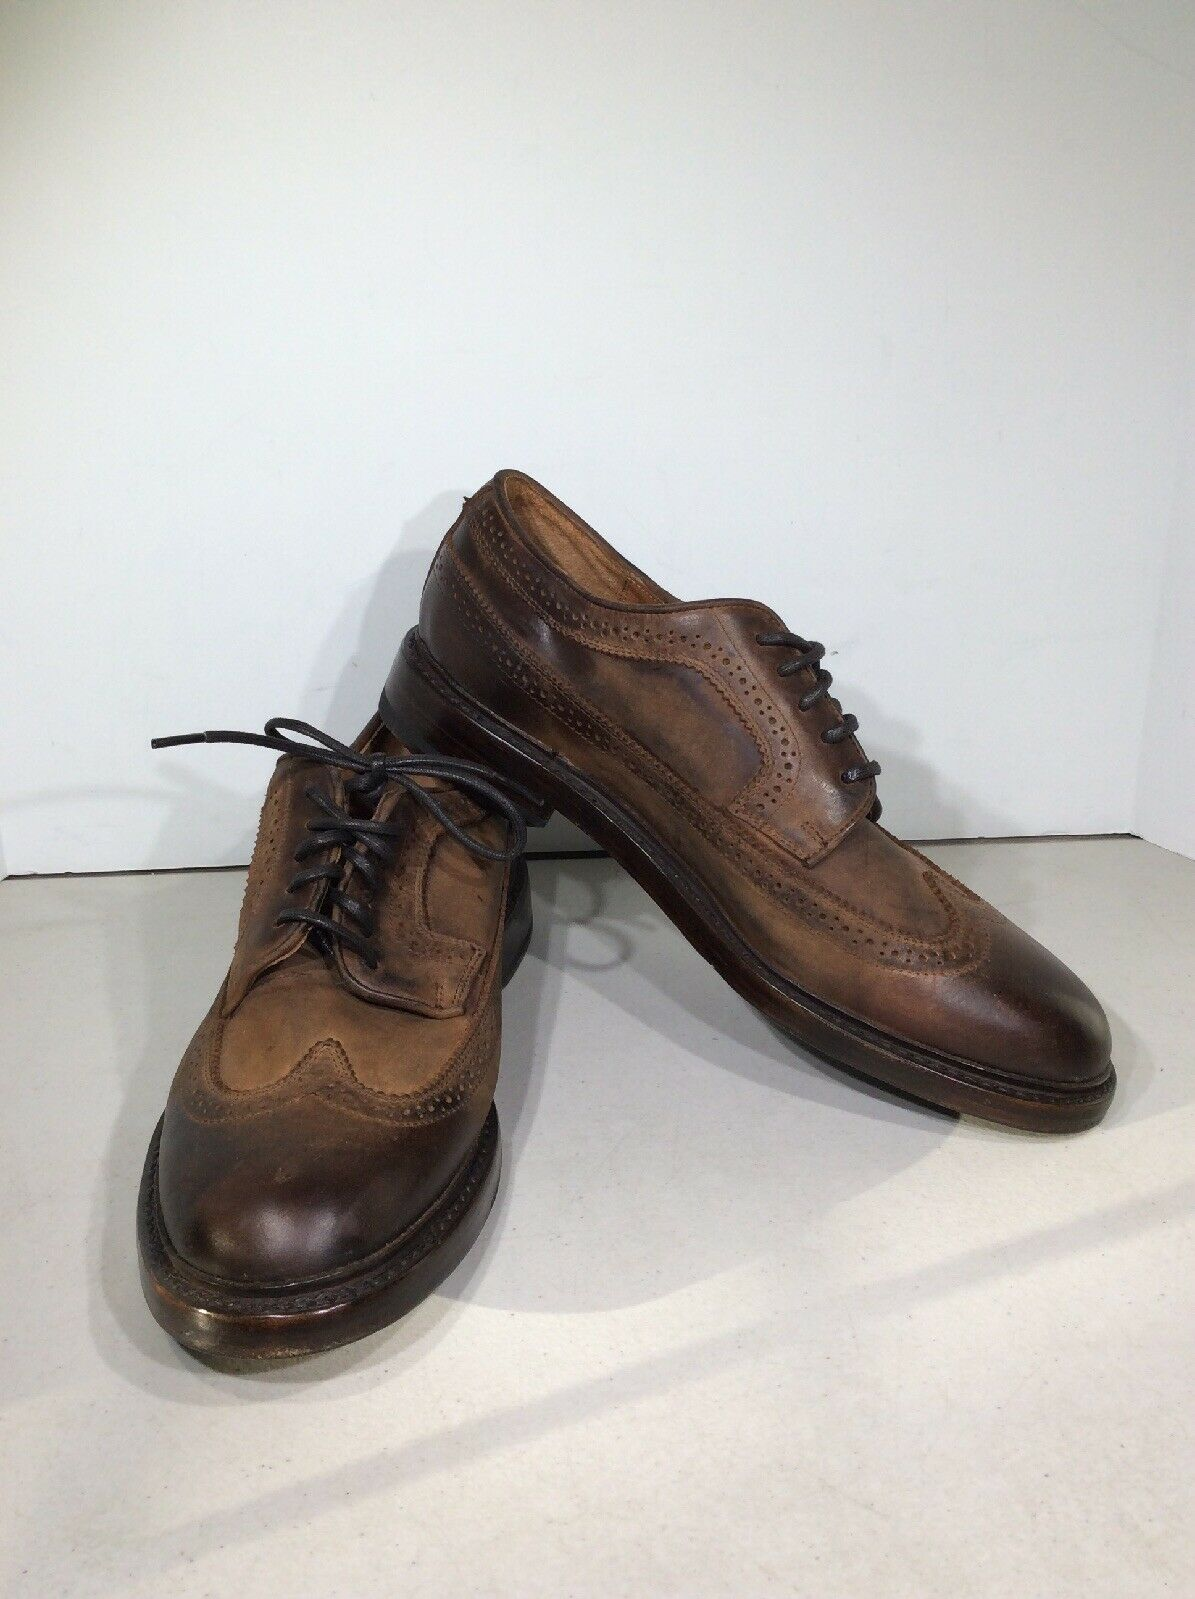 Frye Jones wingtip hombre 8,5d amarre marrón Oxford FW - 420